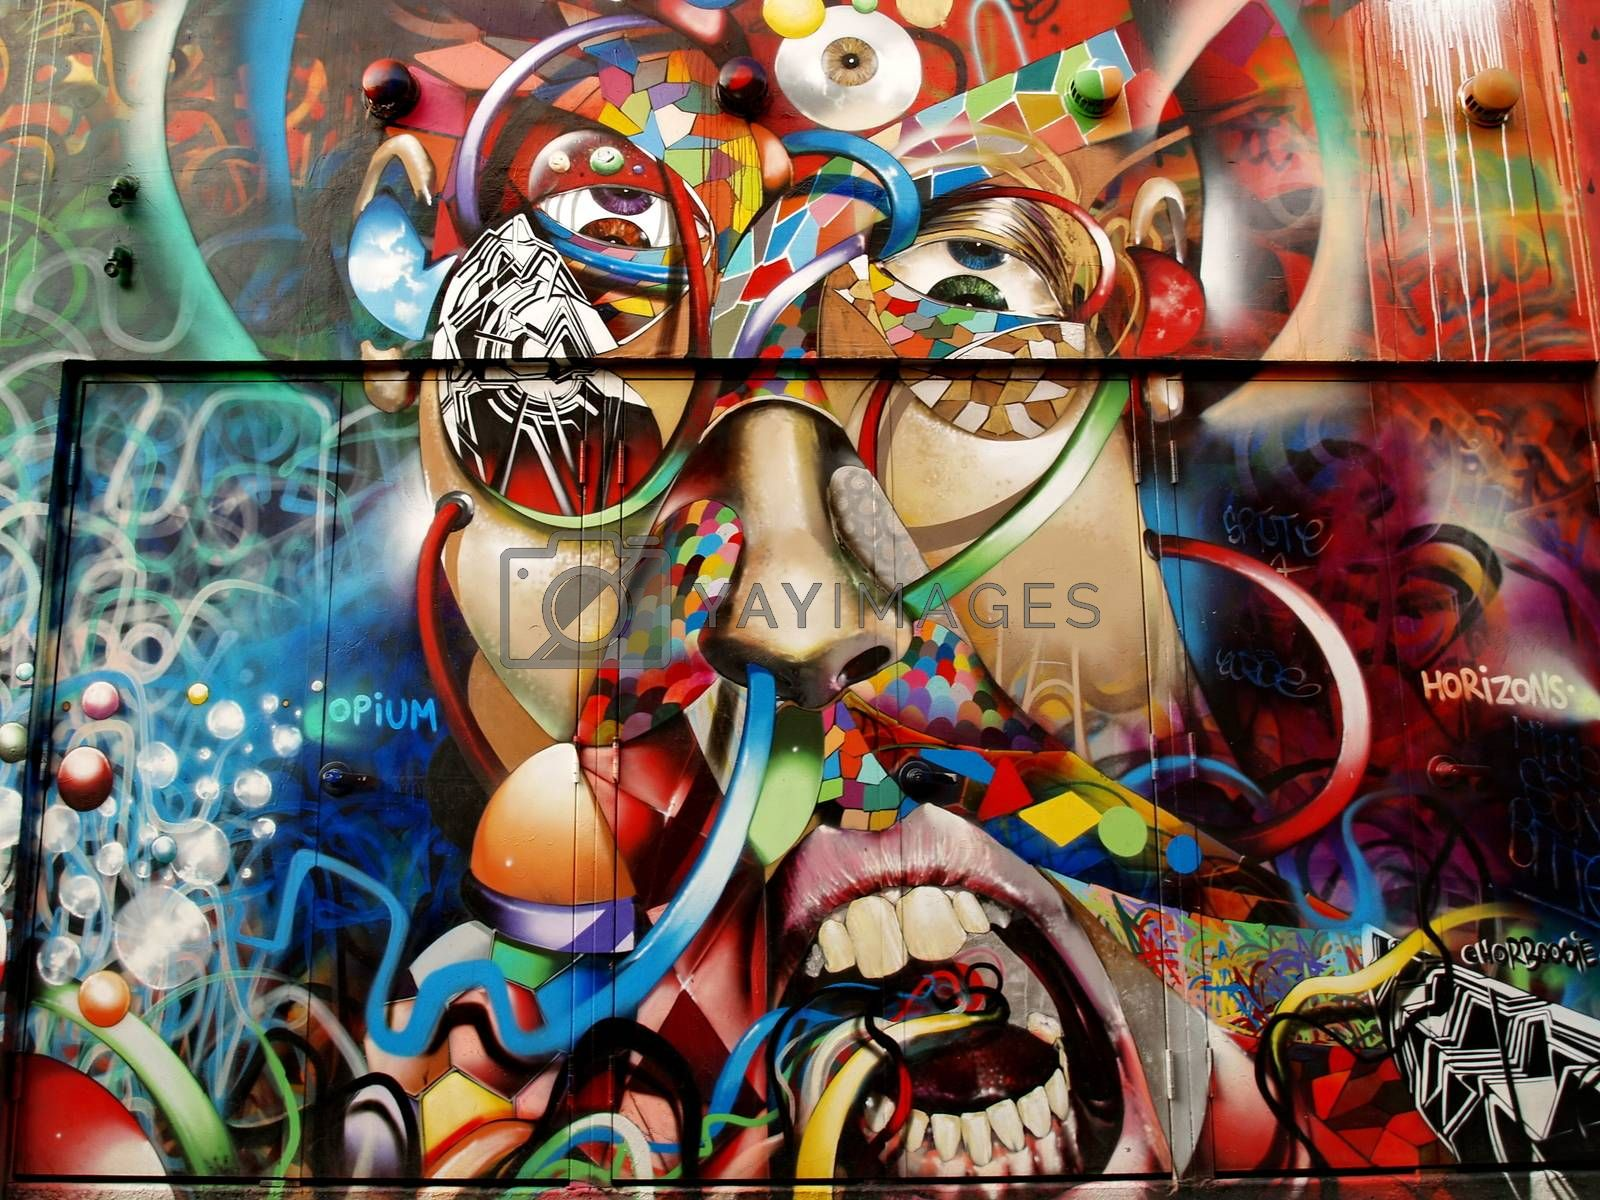 Royalty free image of SAN FRANCISCO - SEPTEMBER 03 : Graffiti in Mission District neig by anderm